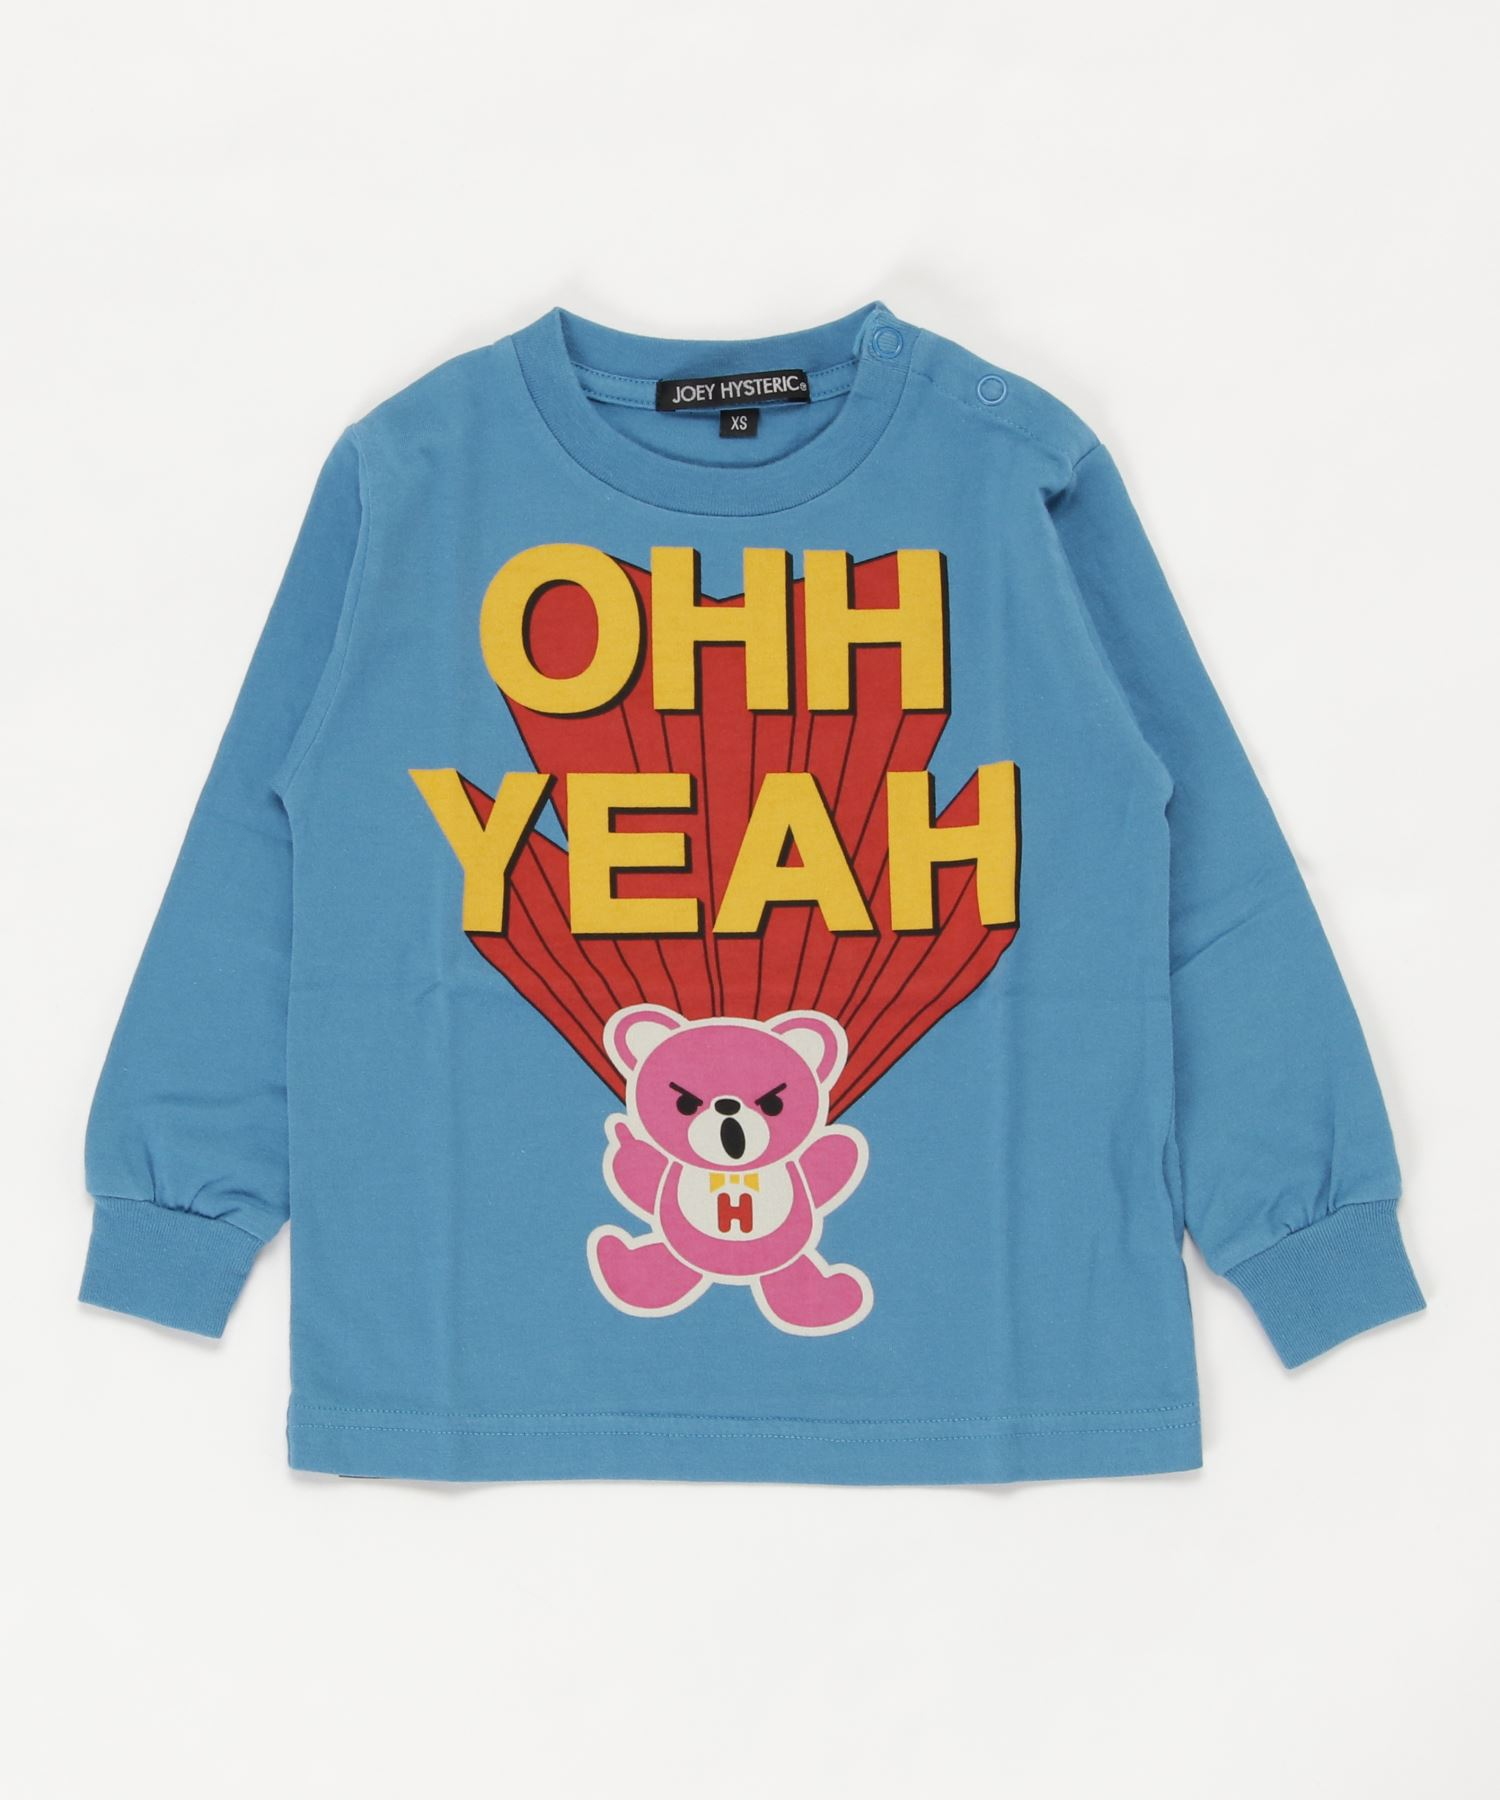 OHH YEAH Tシャツ【XS/S/M】